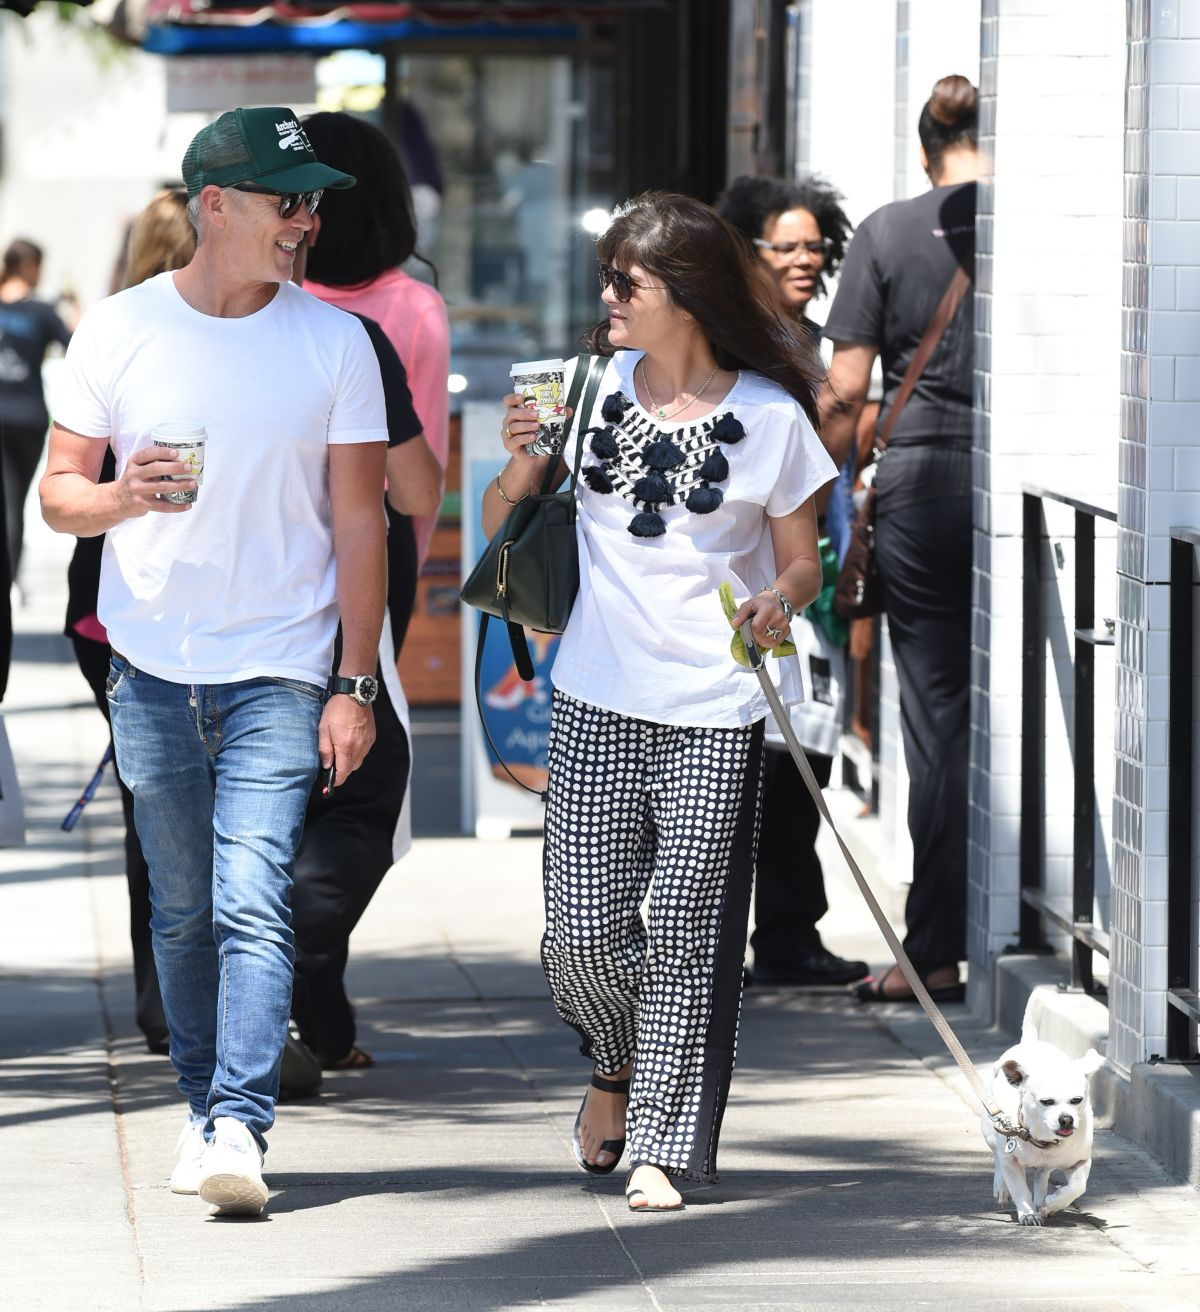 Selma Blair Out with her dog in LA   selma-blair-out-with-her-dog-in-la-_9